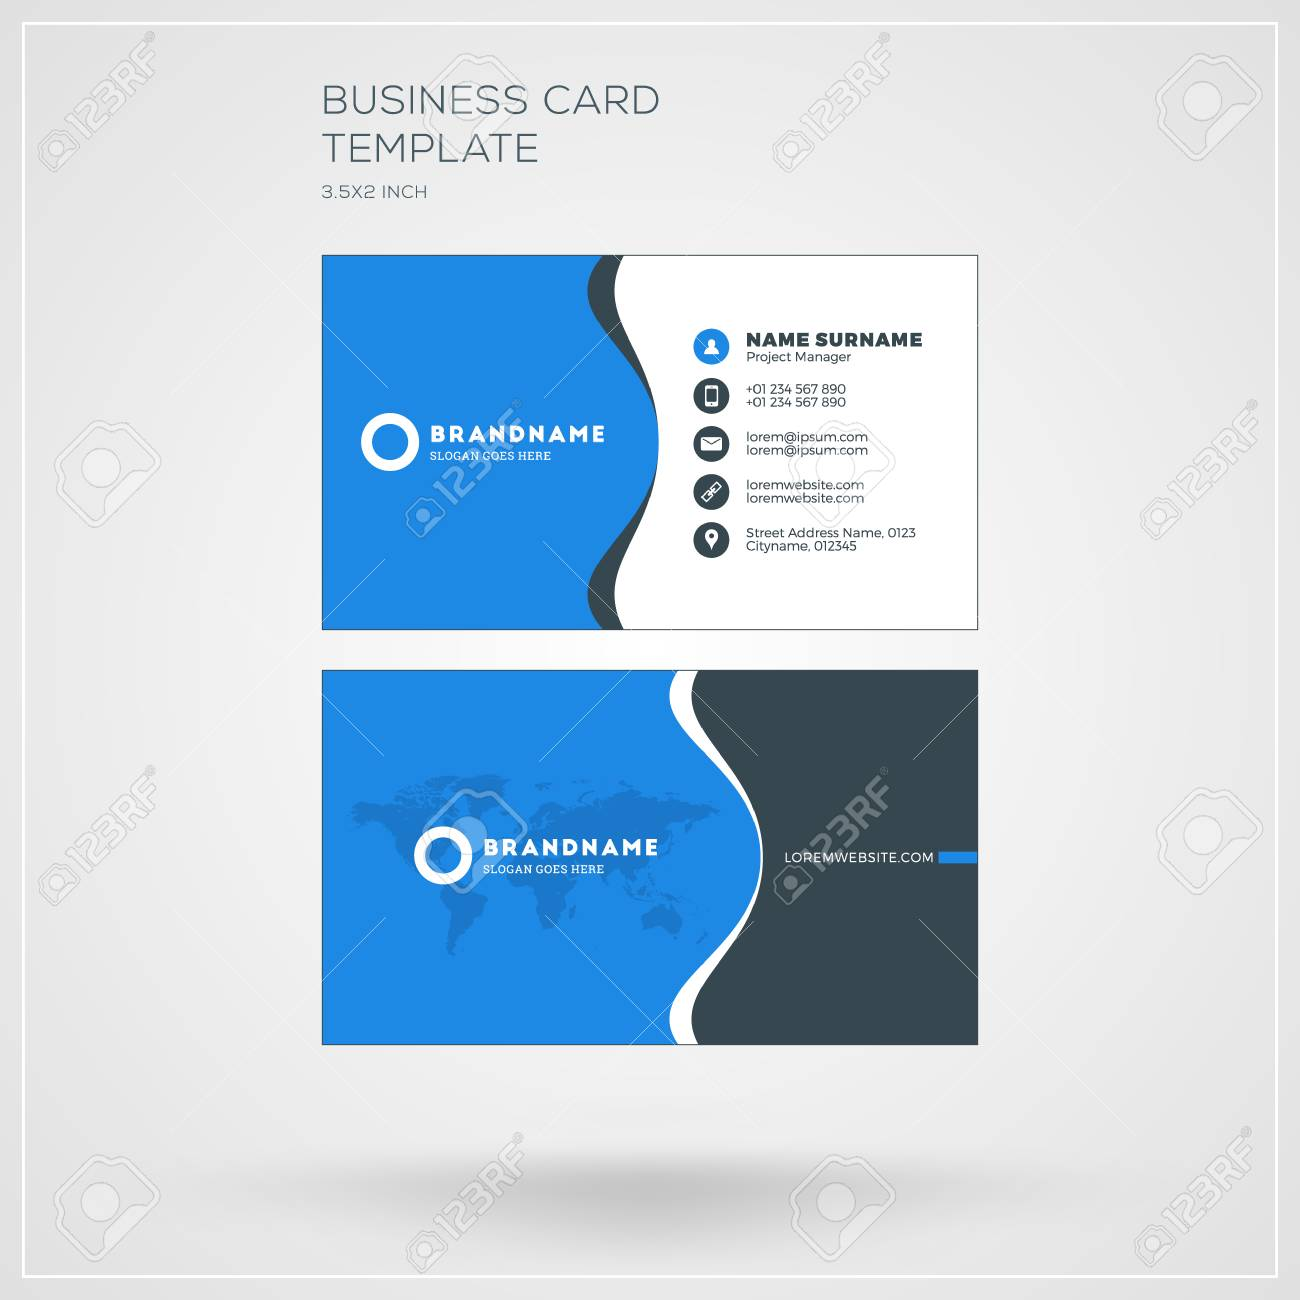 Business Card Print Template Personal Visiting Card With Company